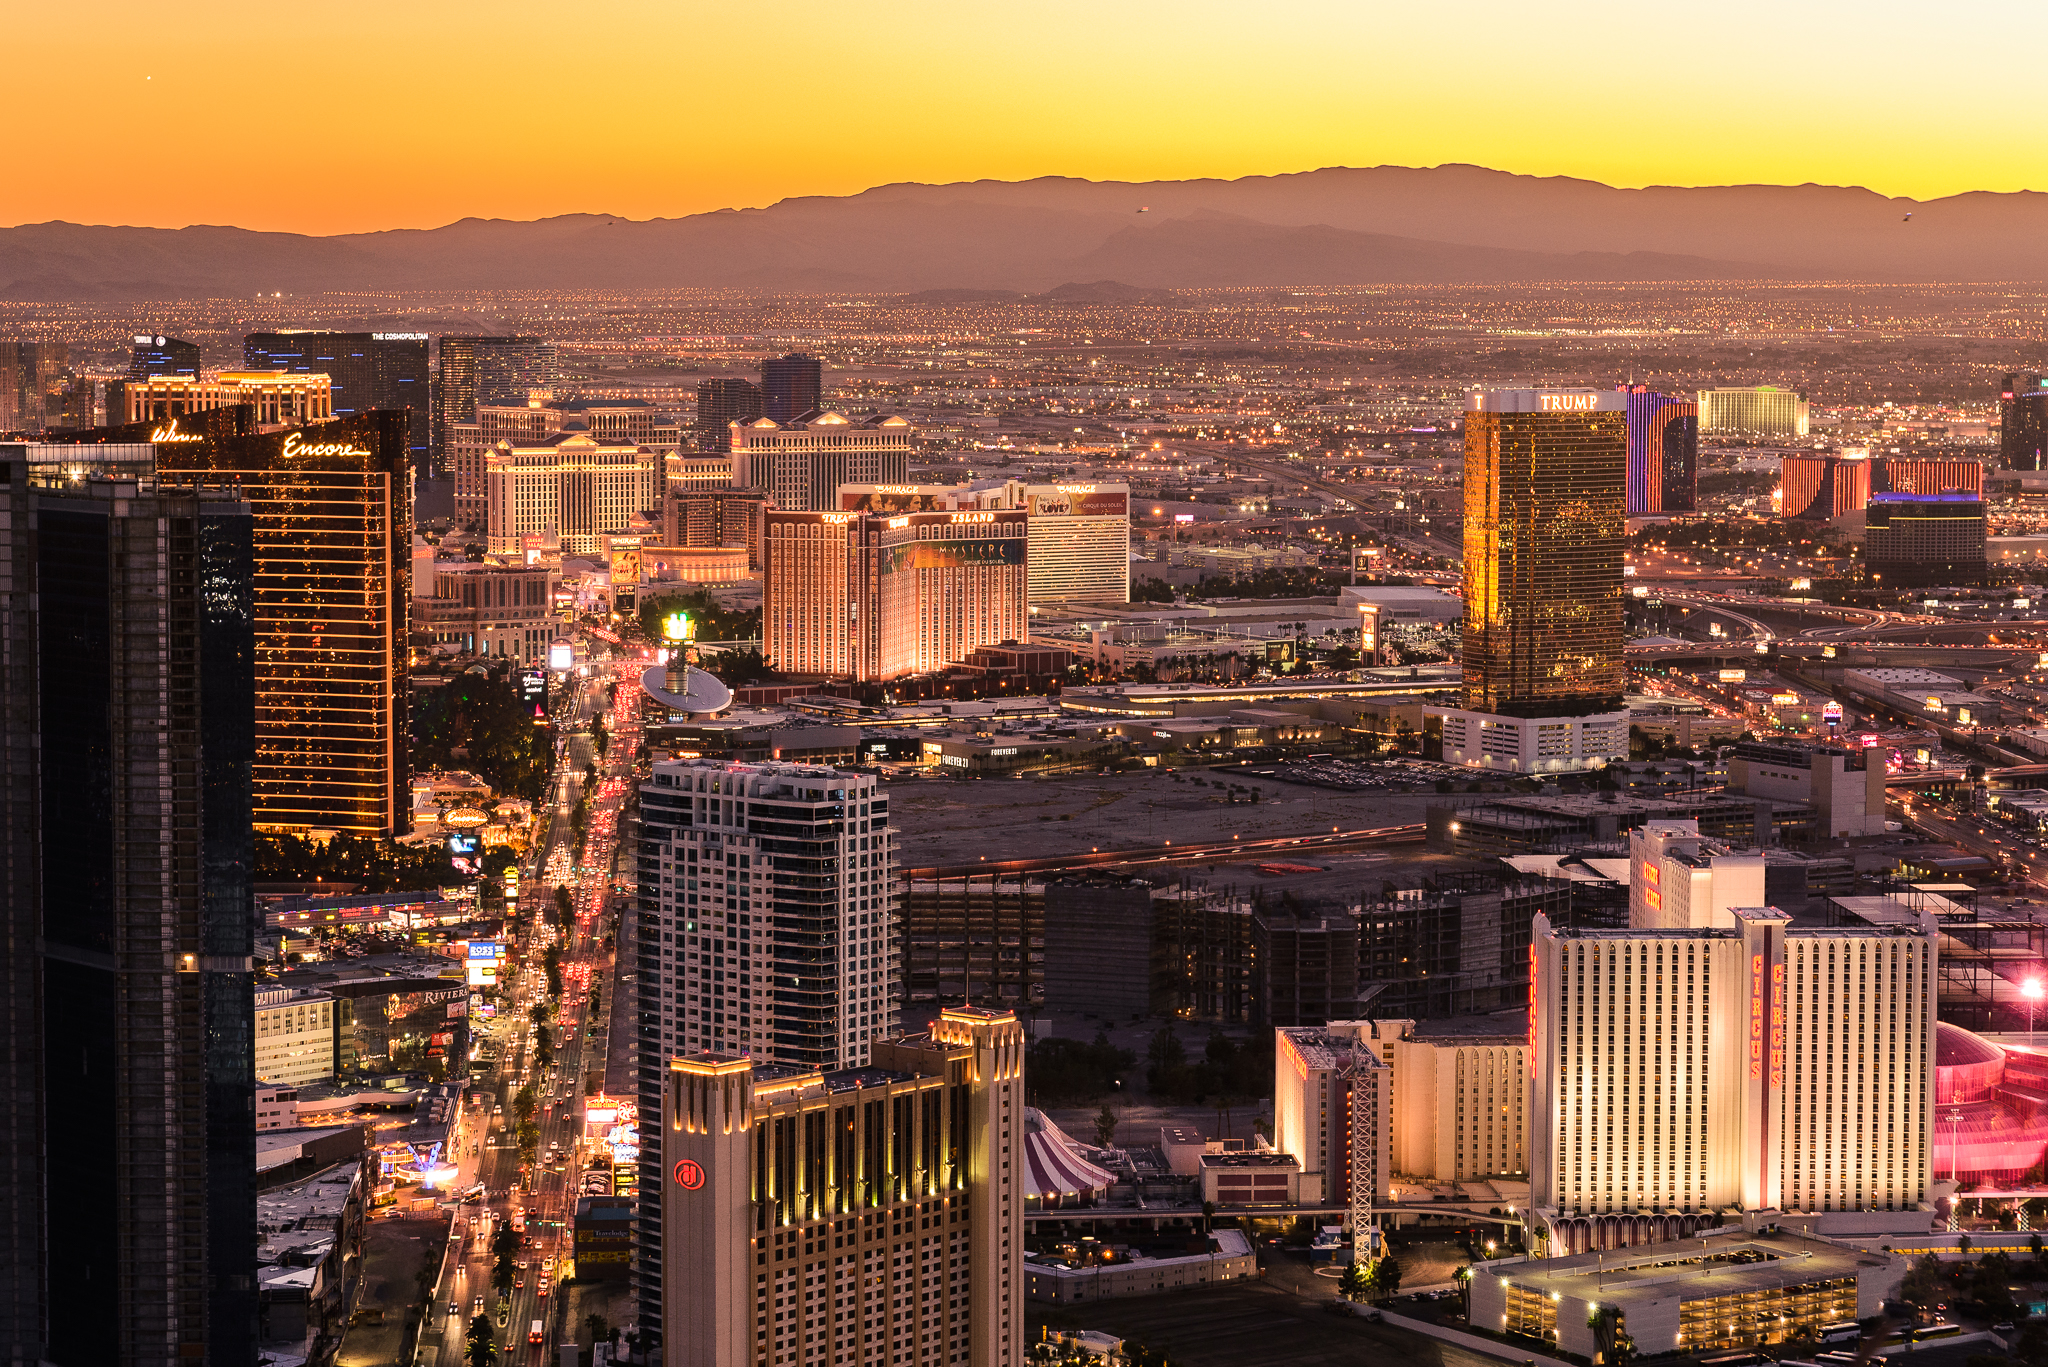 Down the Las Vegas Strip from the Stratosphere